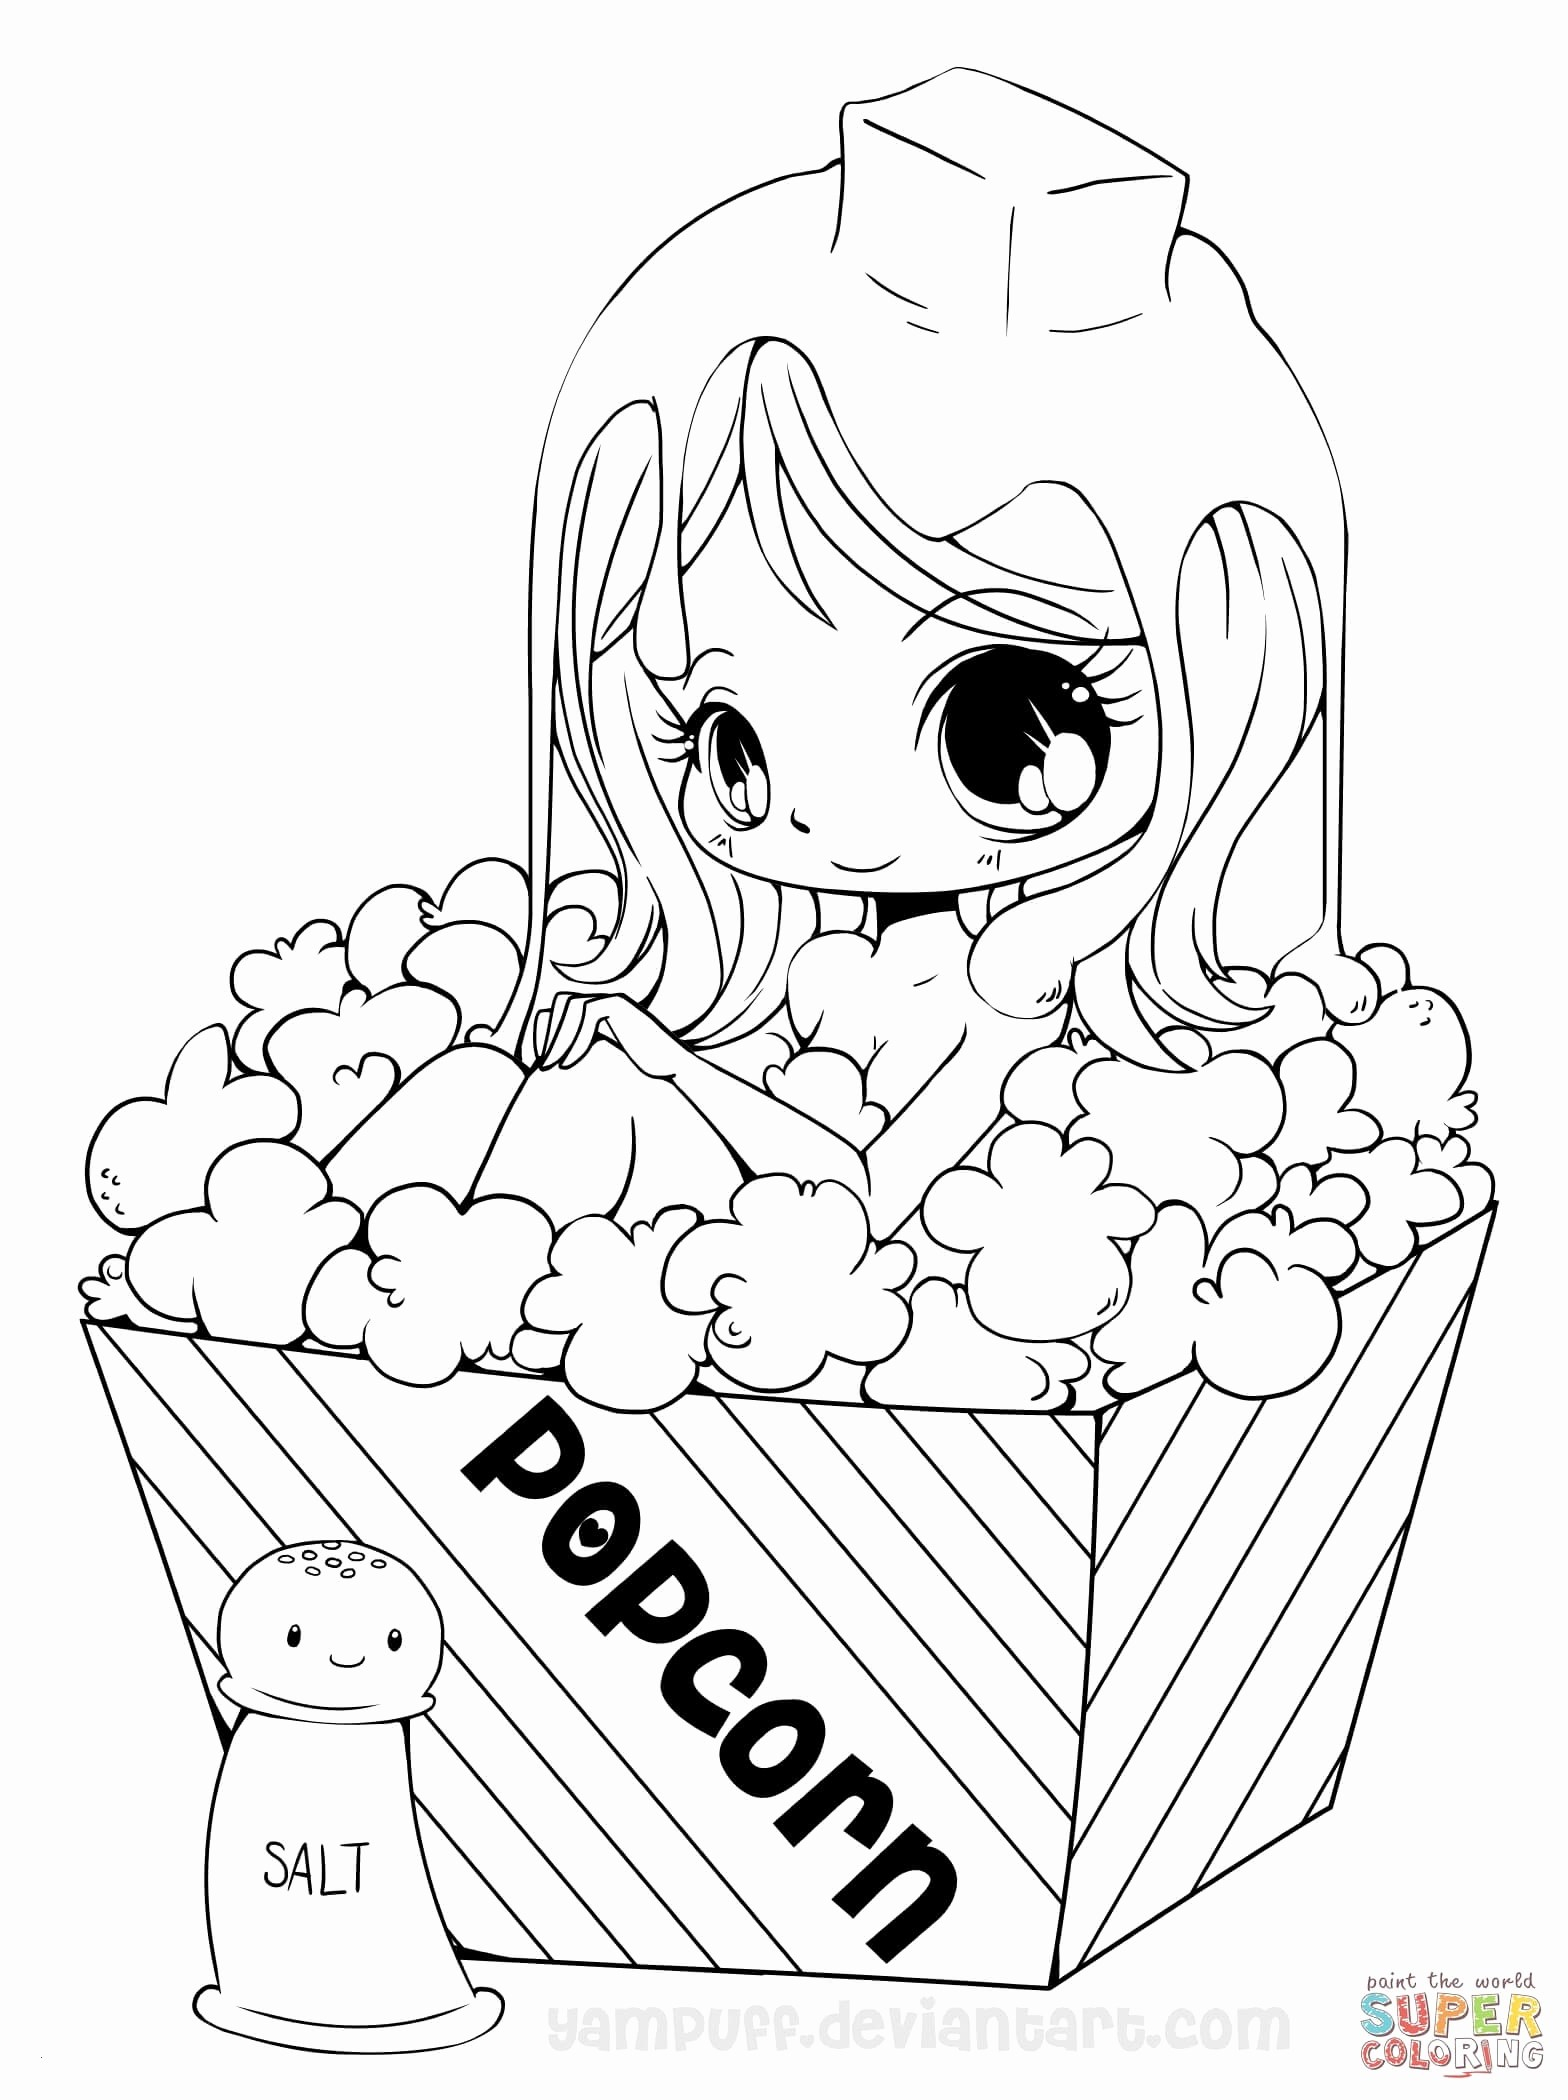 anime coloring pages online Collection-Awesome Anime Girl Coloring Pages Coloring Pages Elegant Ausmalbilder Anime Girl 18-s